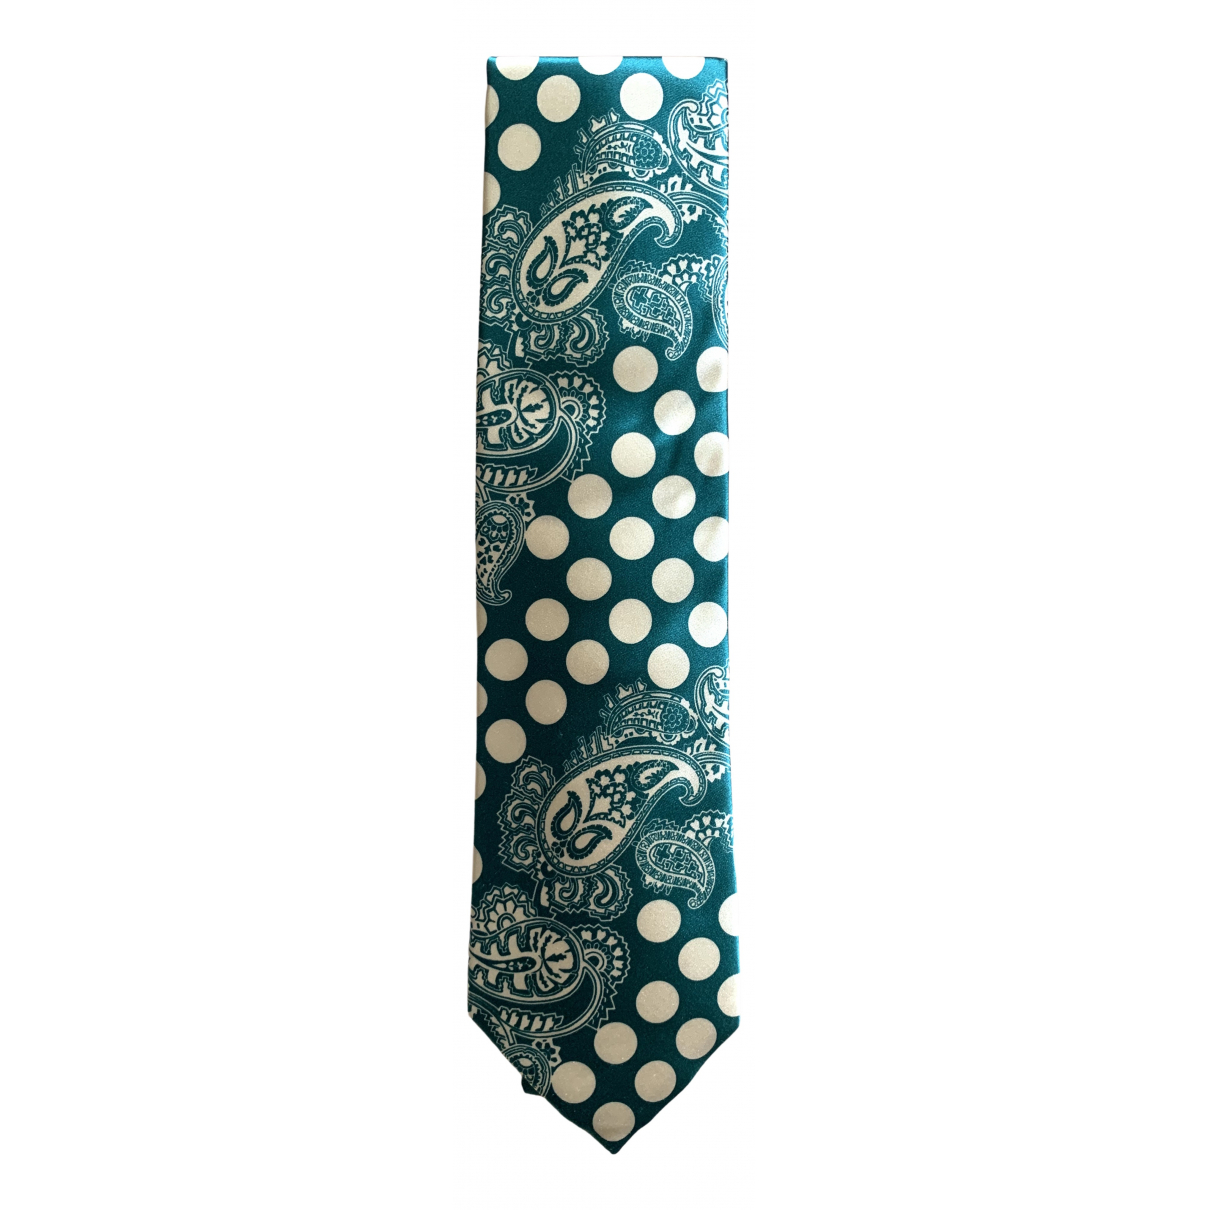 Paul Smith N Green Silk Ties for Men N